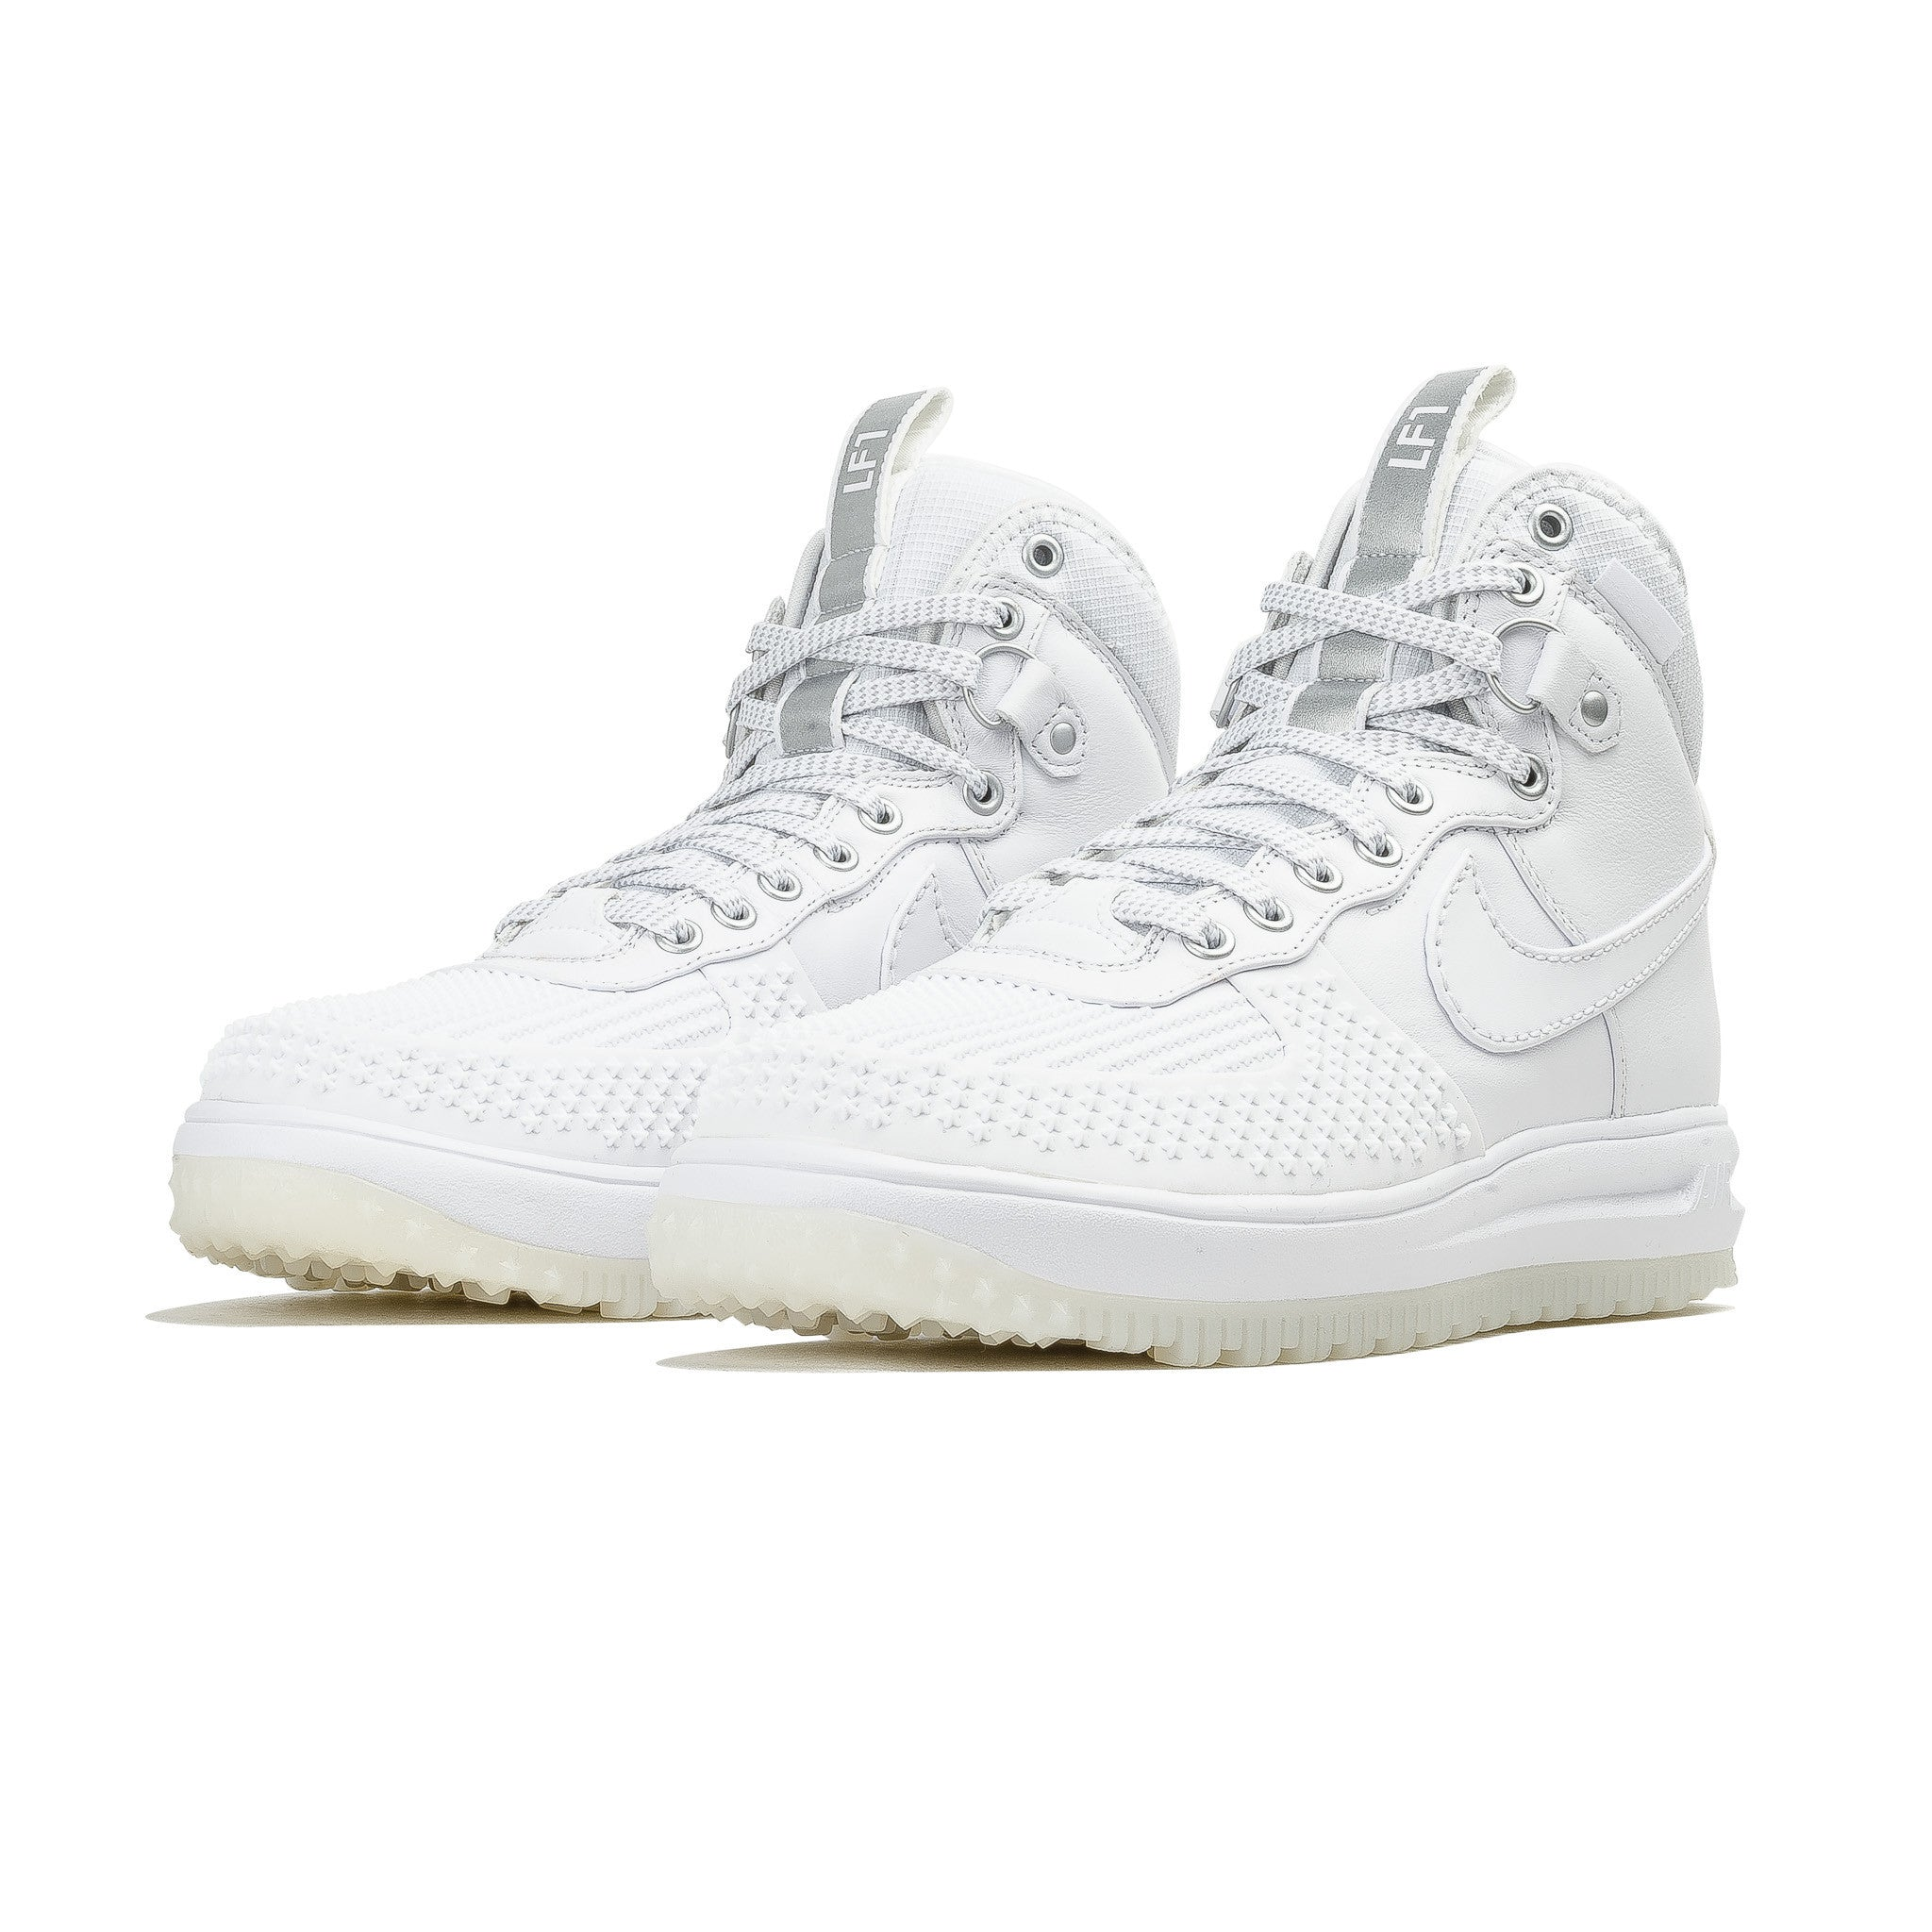 Lunar Force 1 Duckboot 805899-101